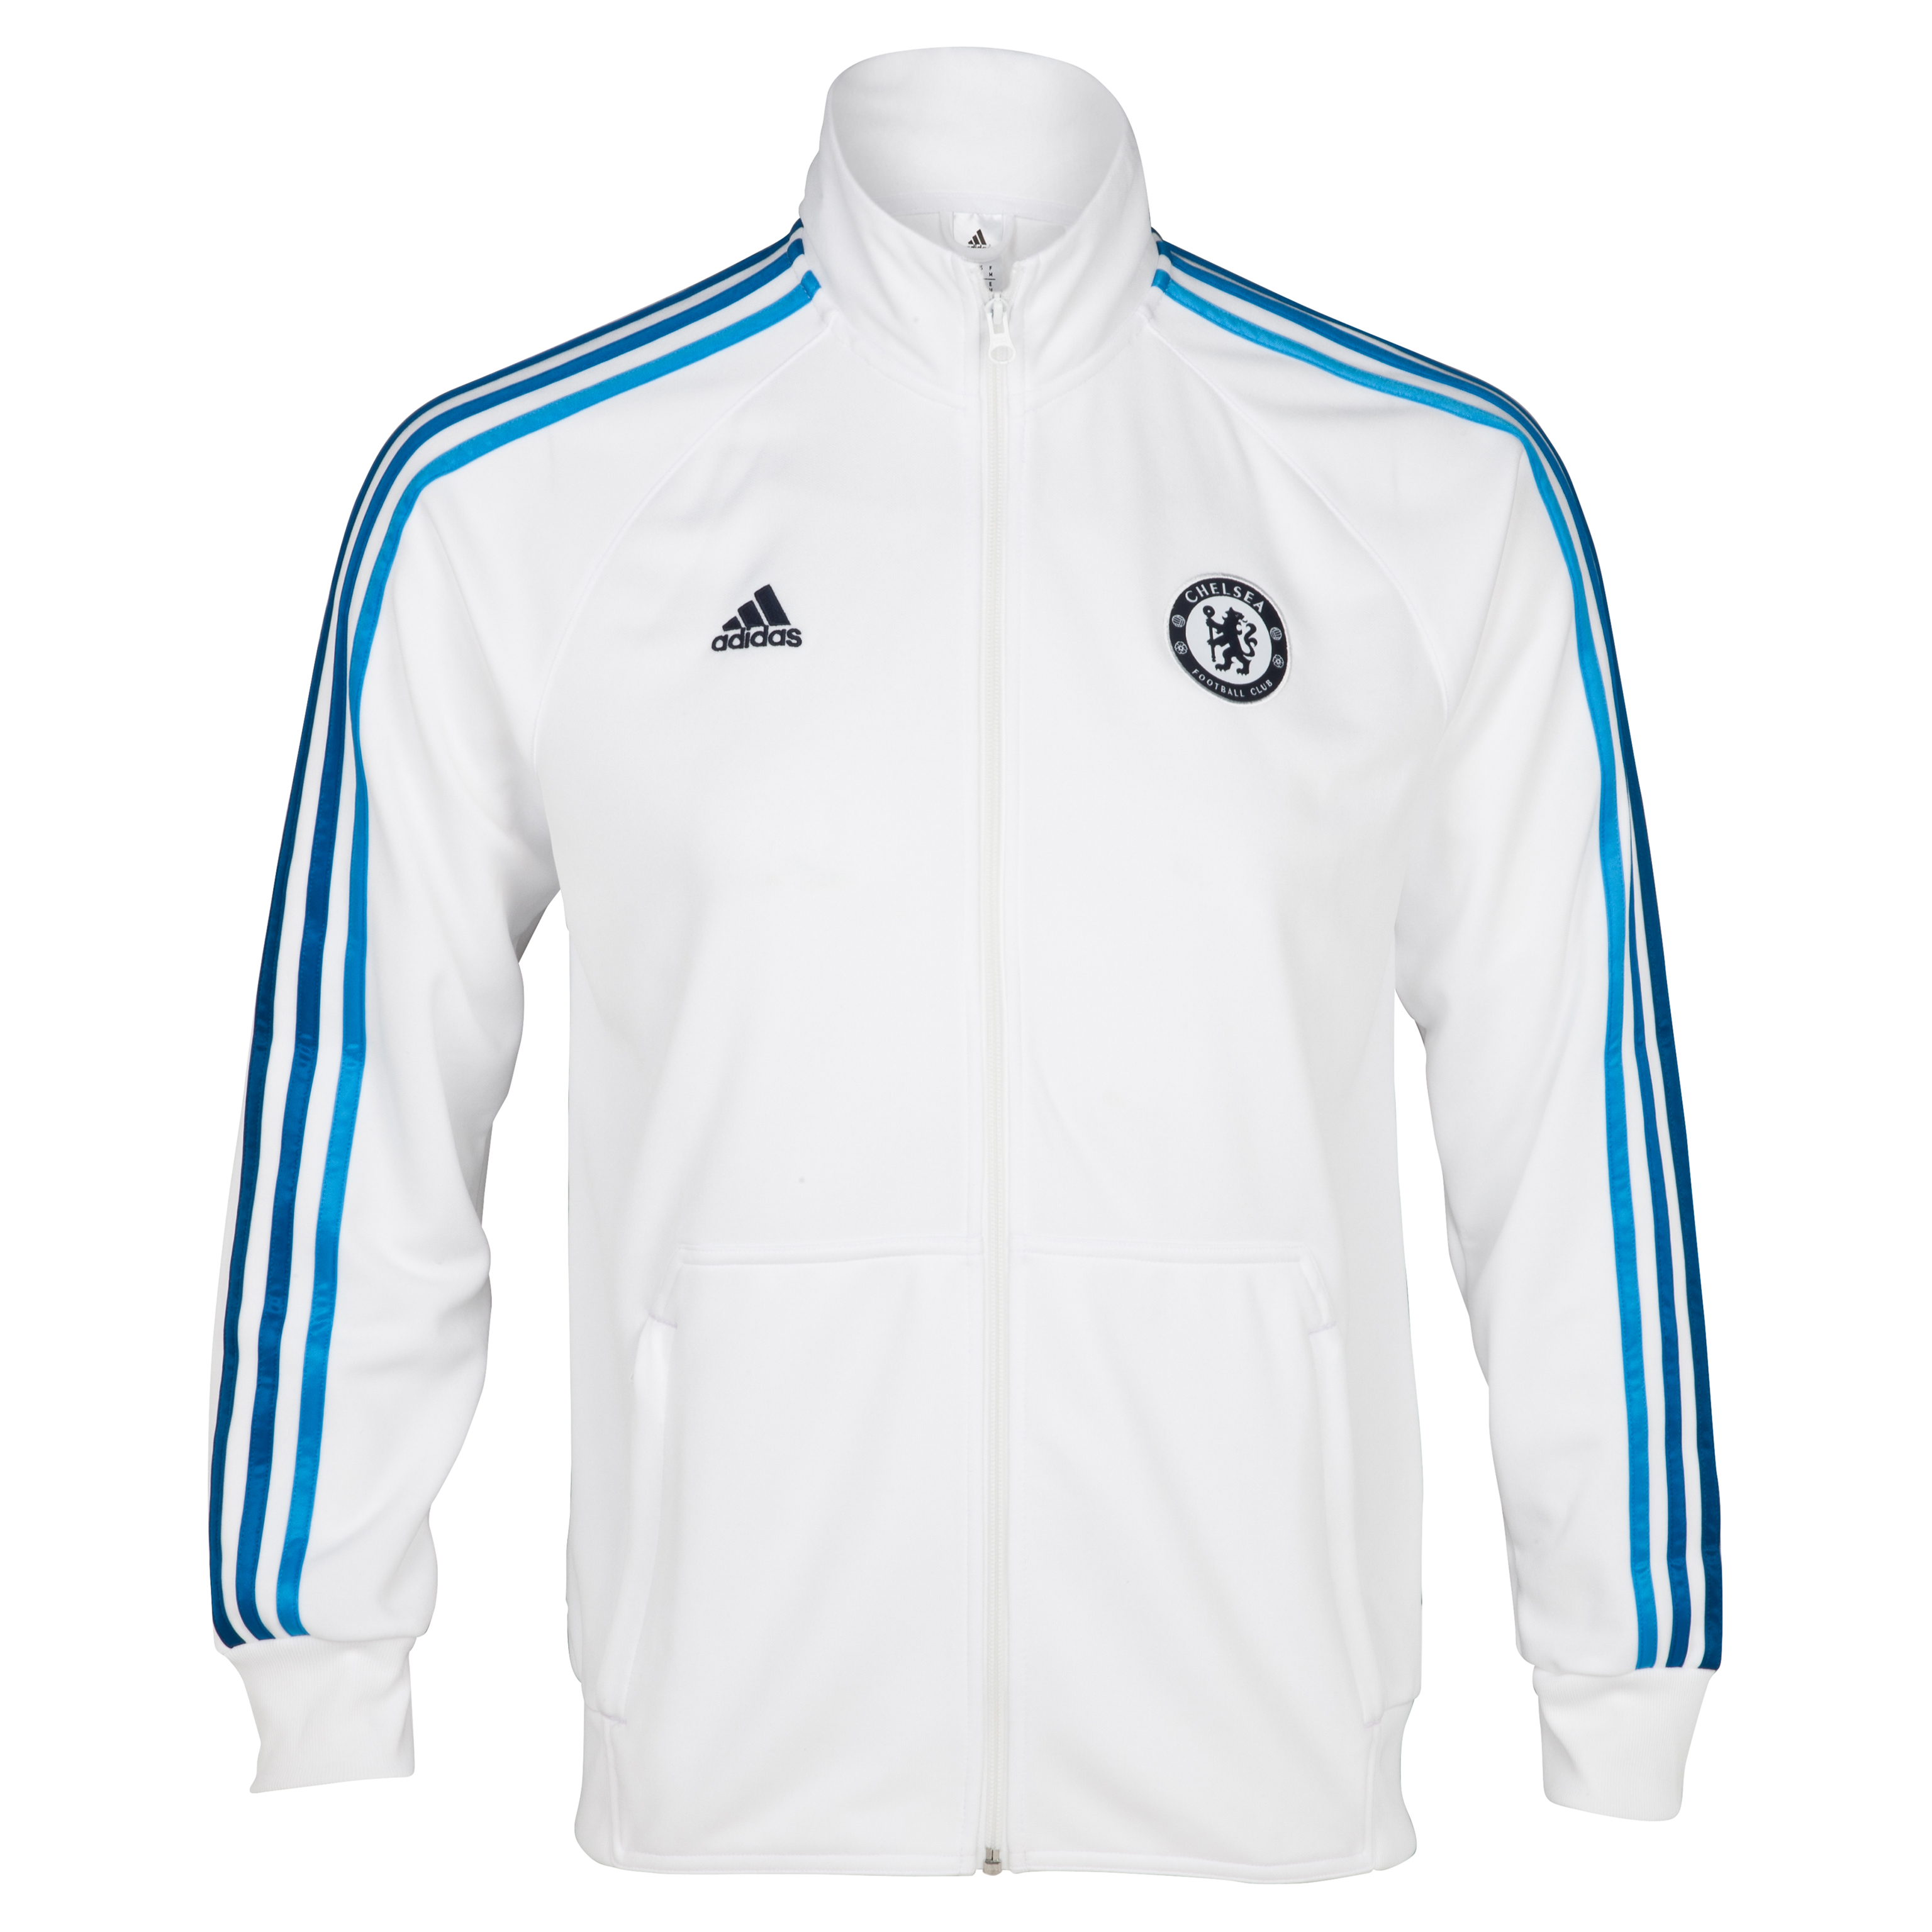 Chelsea Core Track Top - White/Cyan S09